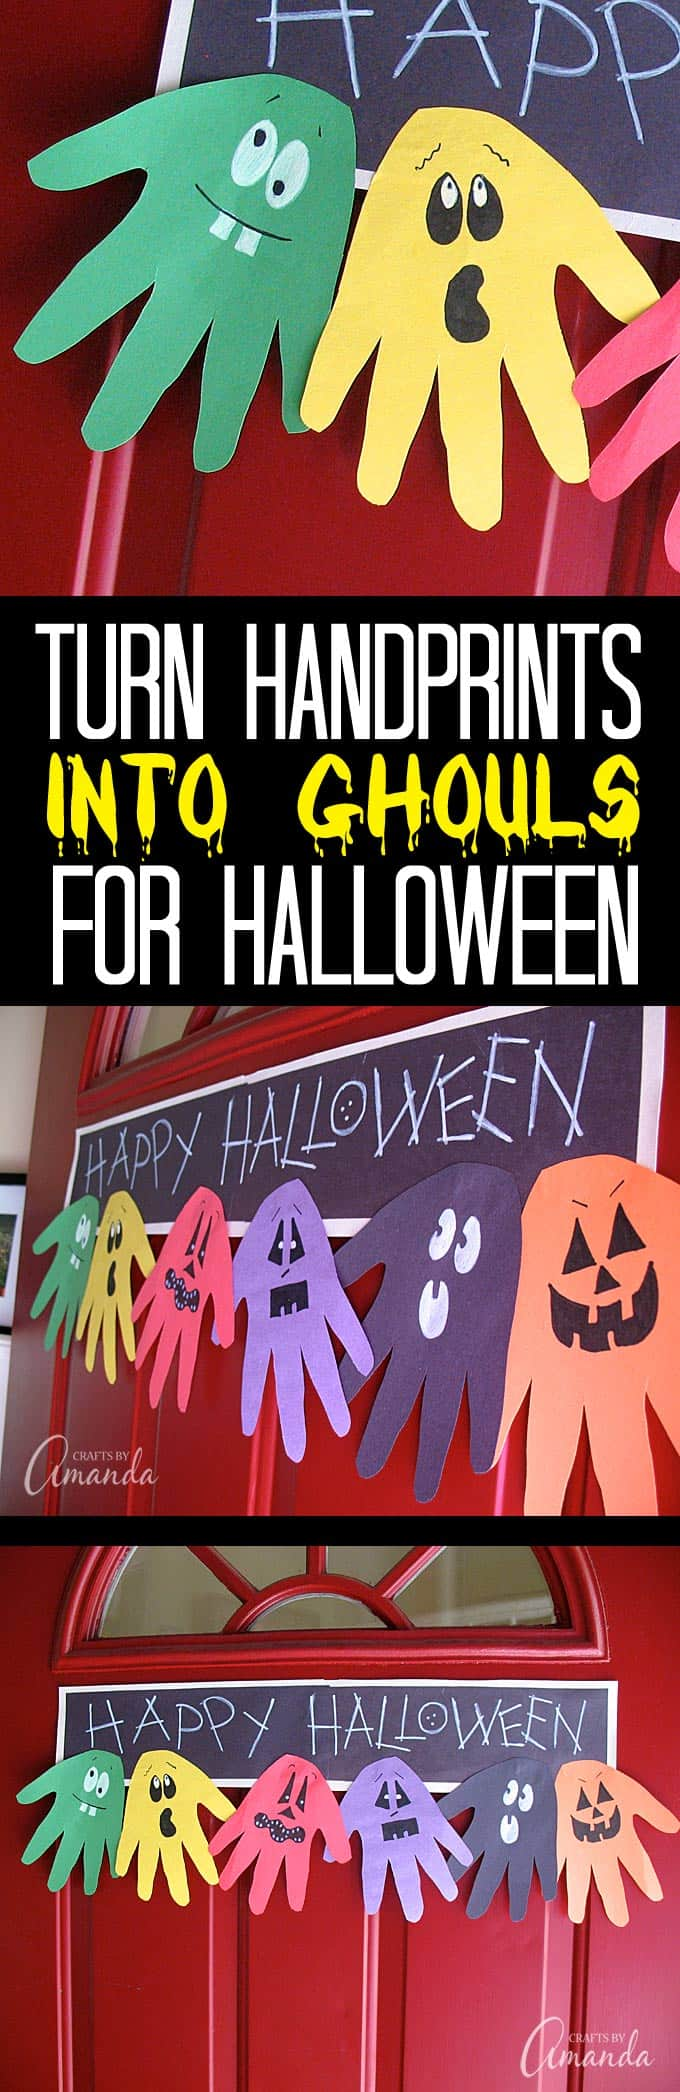 Make this adorable Halloween Handprint Ghoul Banner with the kids to hang on the door! A great way to greet trick or treaters. Would be a fun troop or classroom project too!